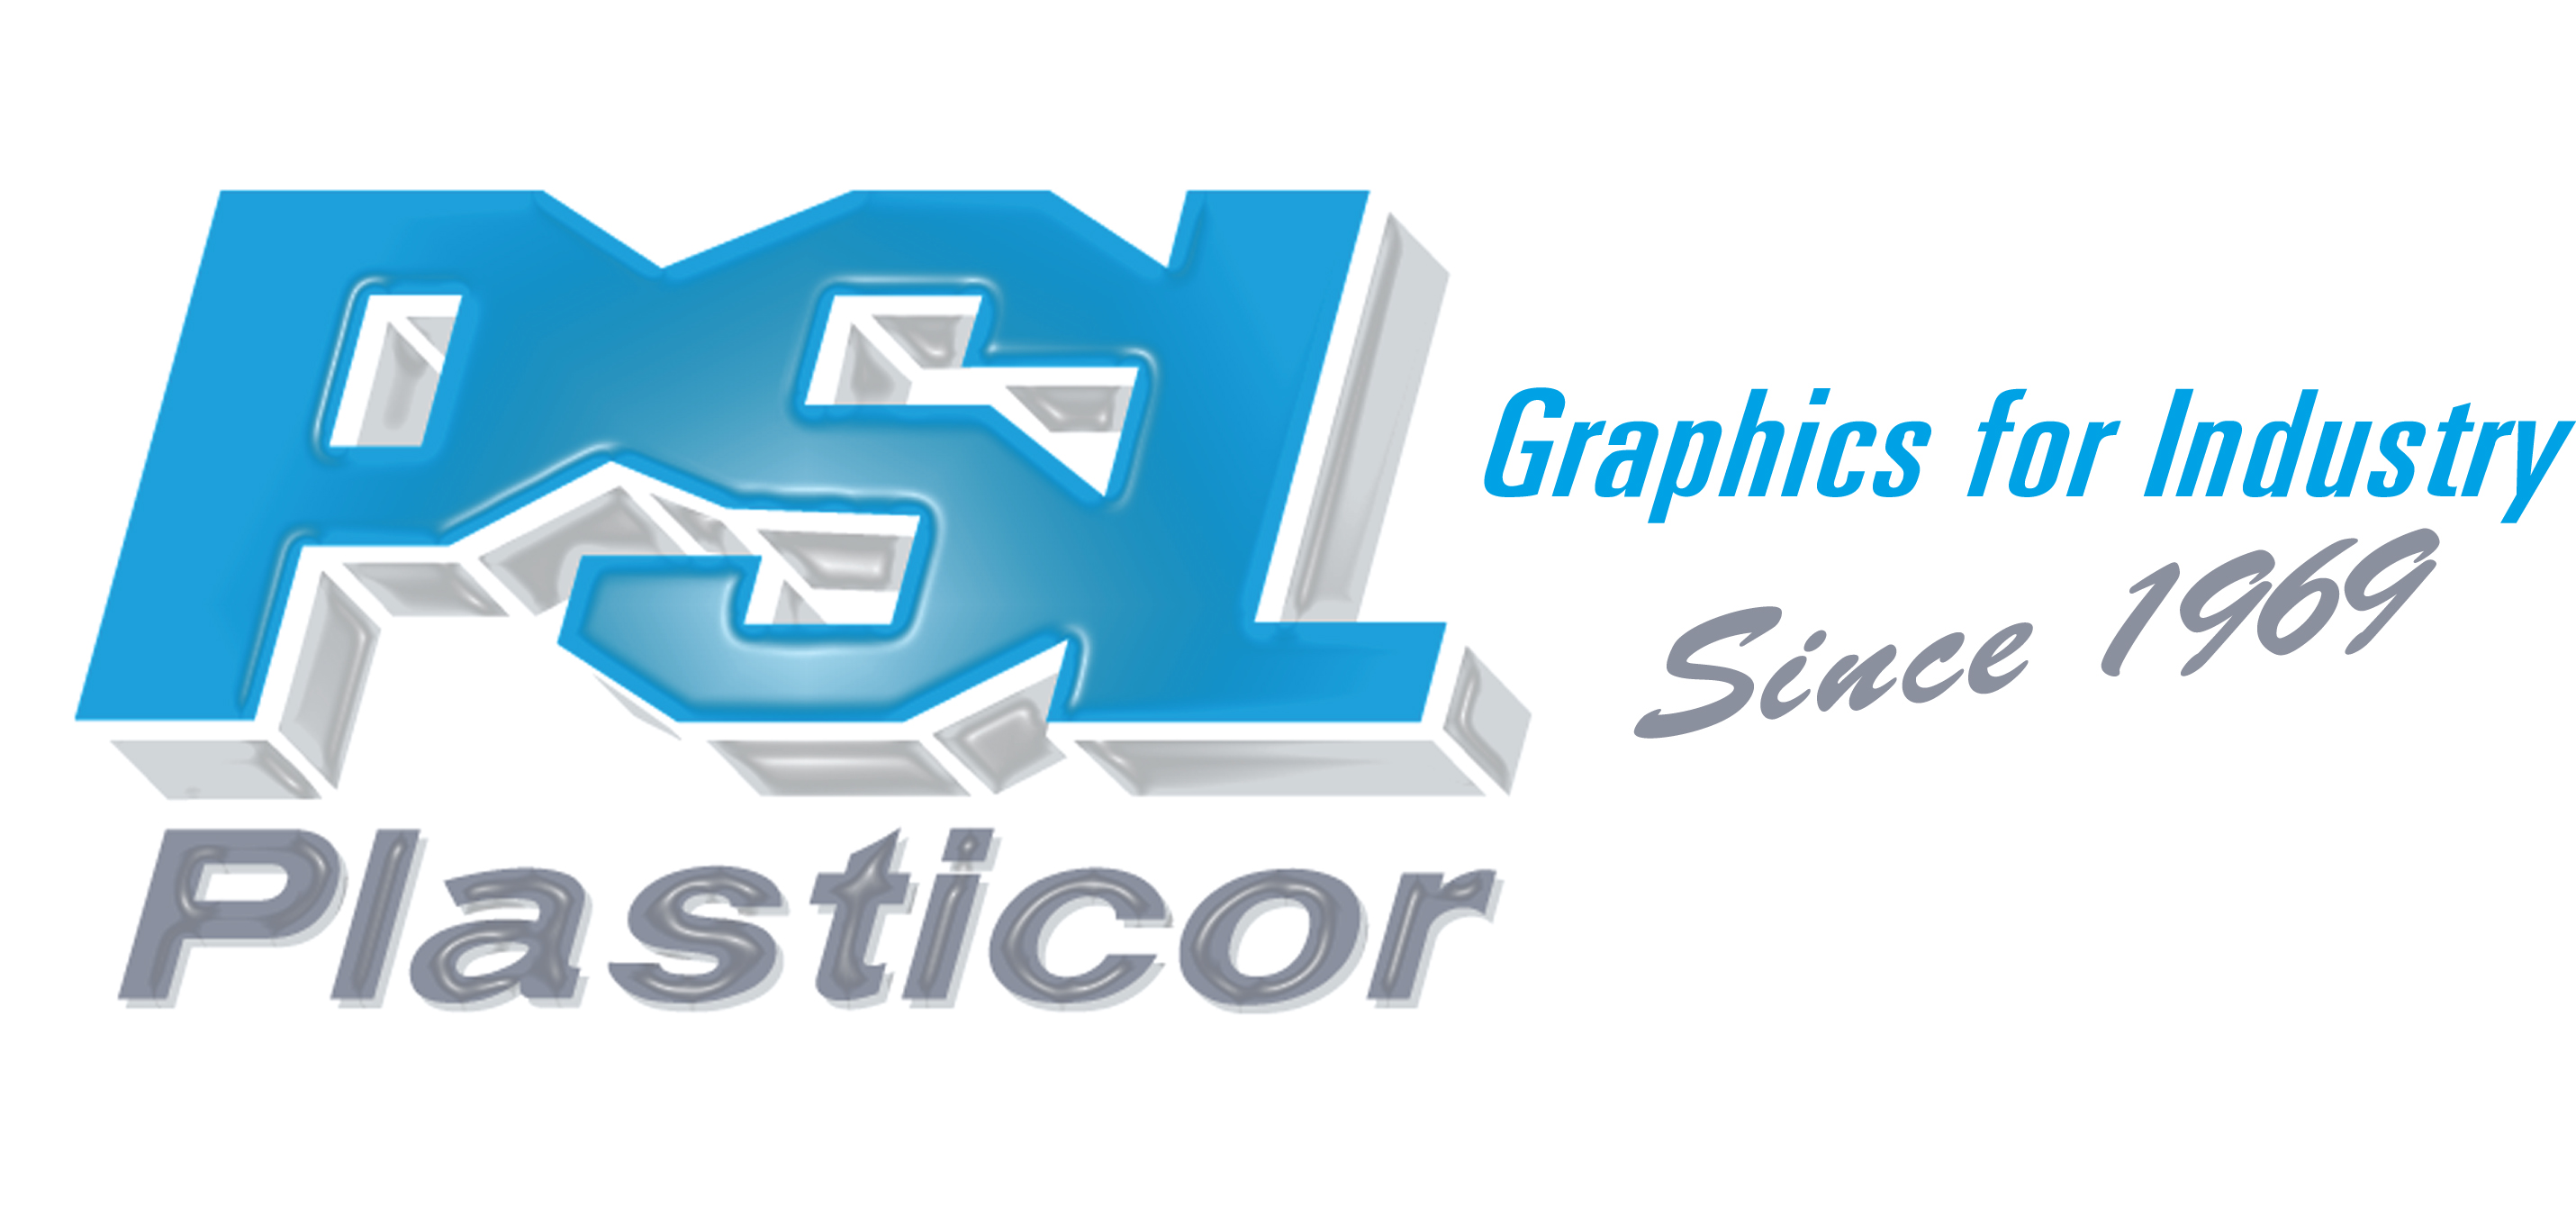 Plasticor Sales Ltd.